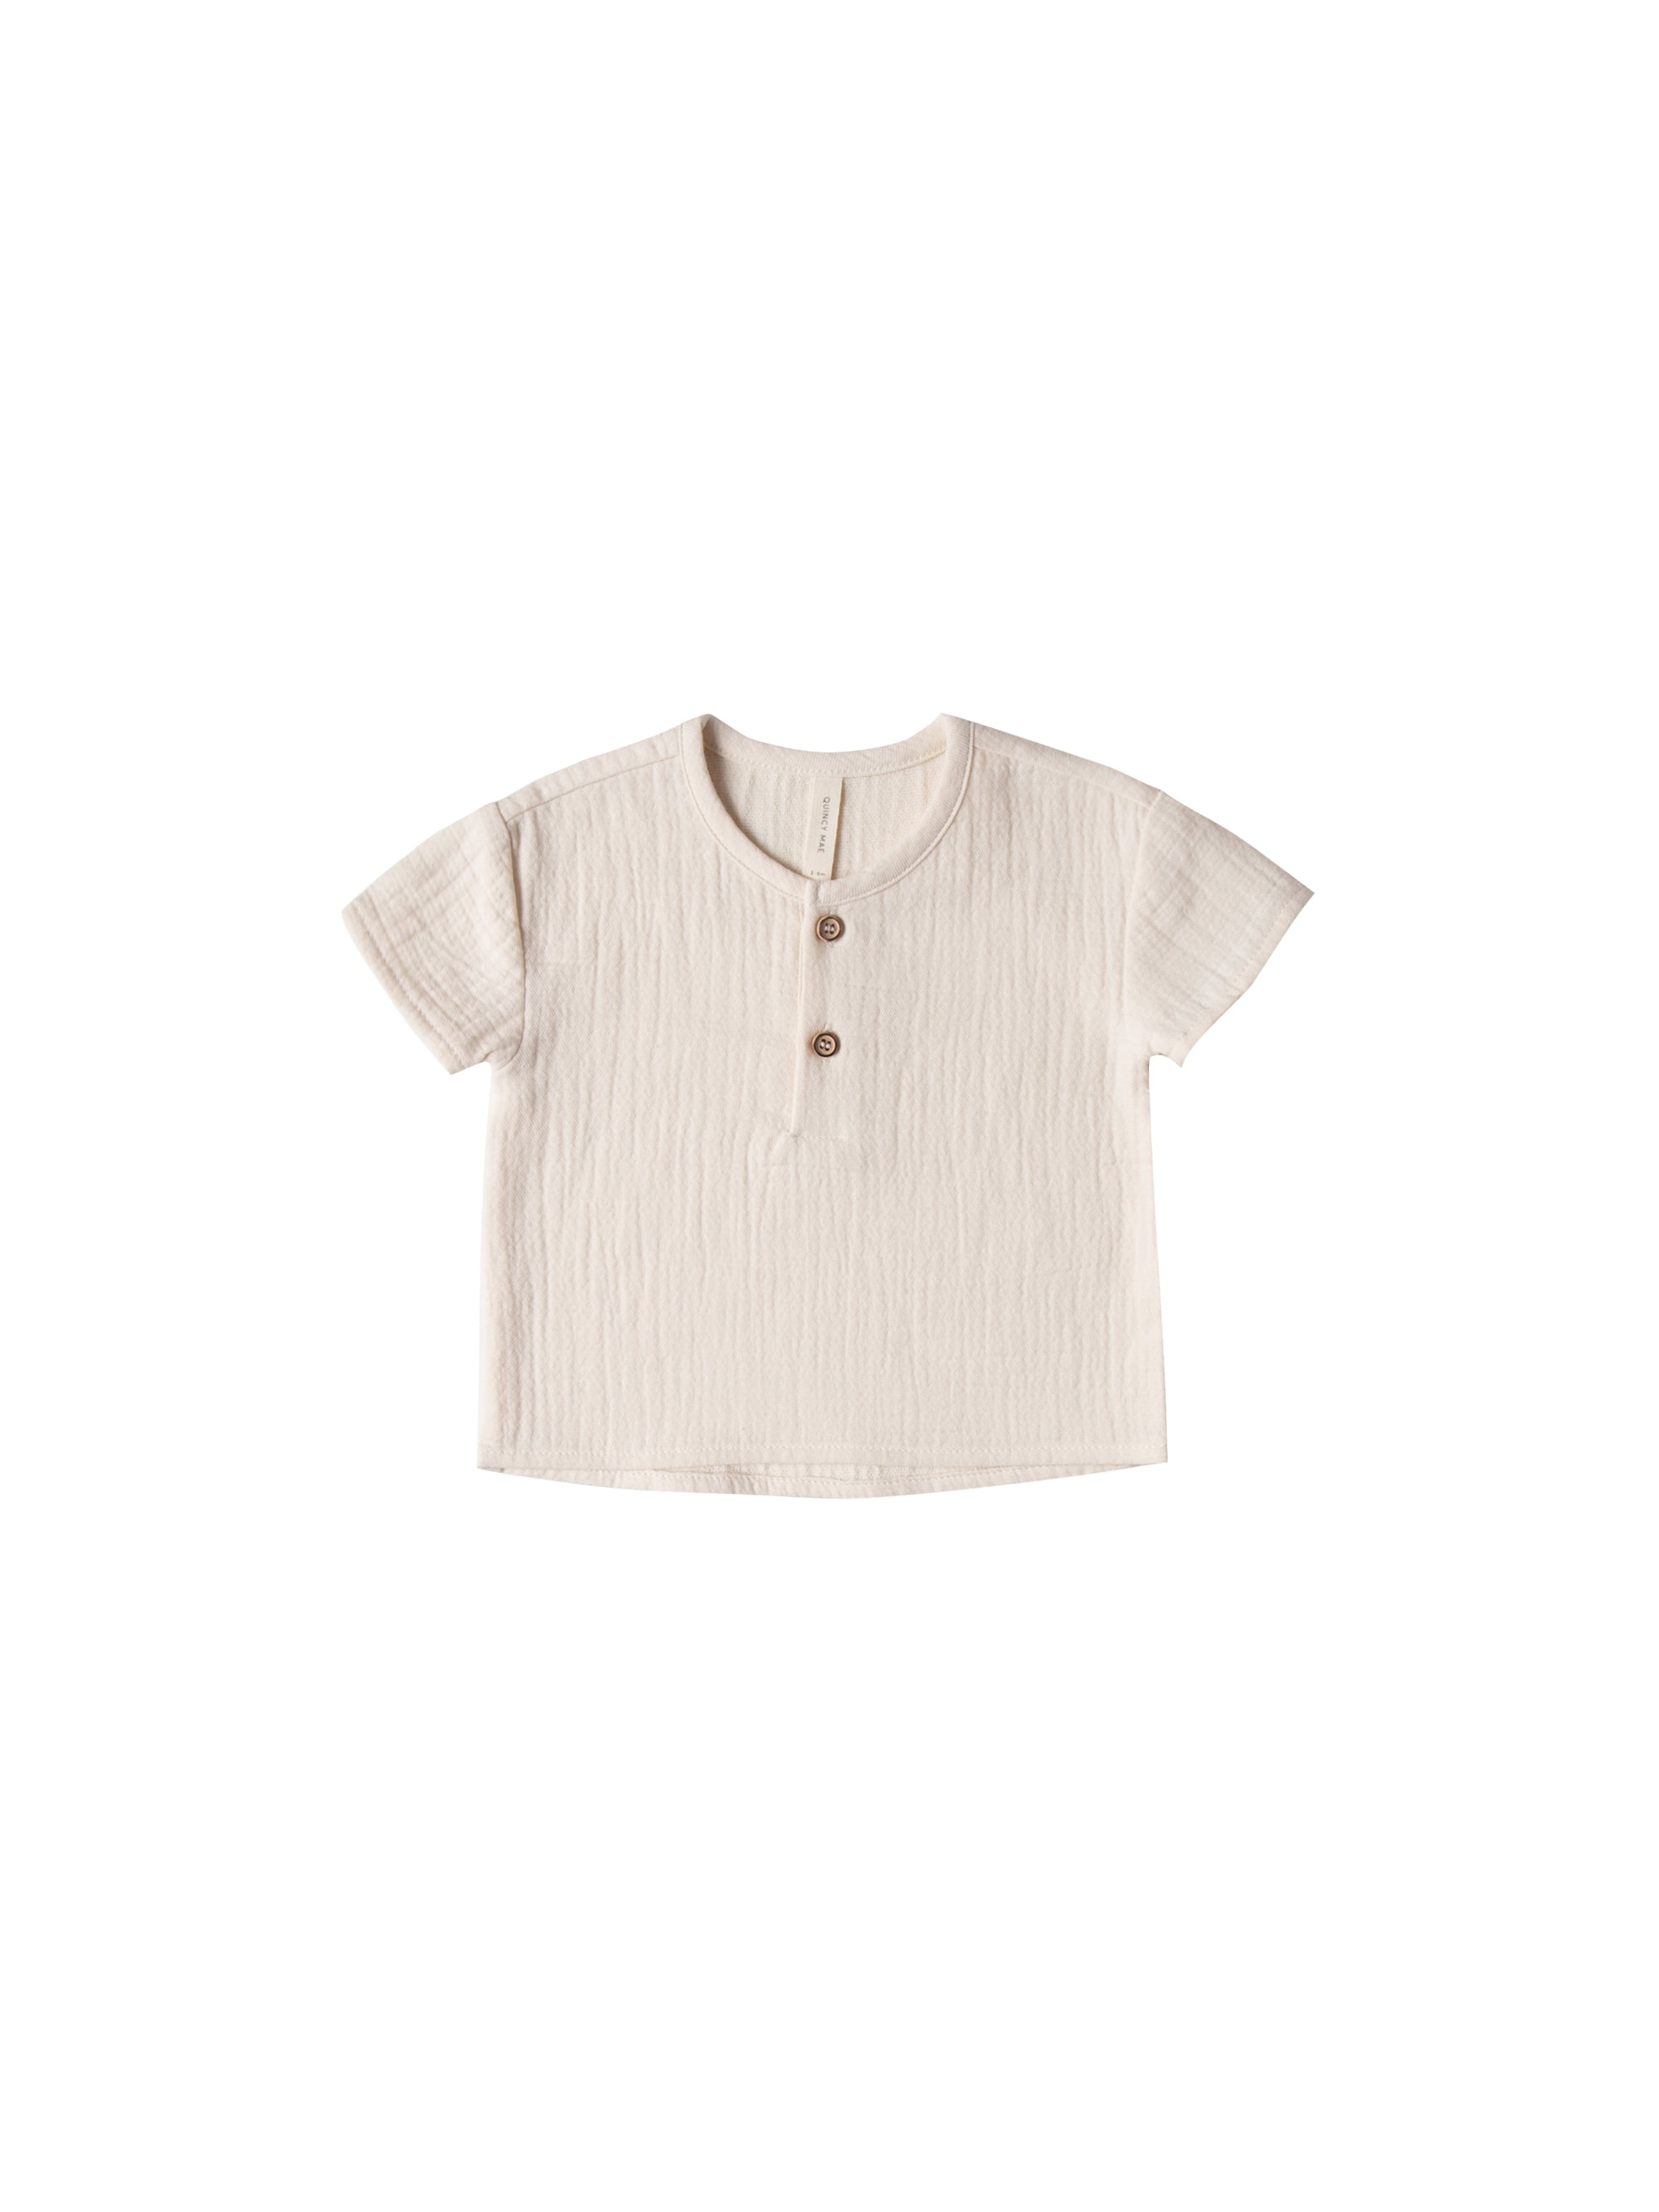 Quincy Mae - Woven Henry Top (Pebble)